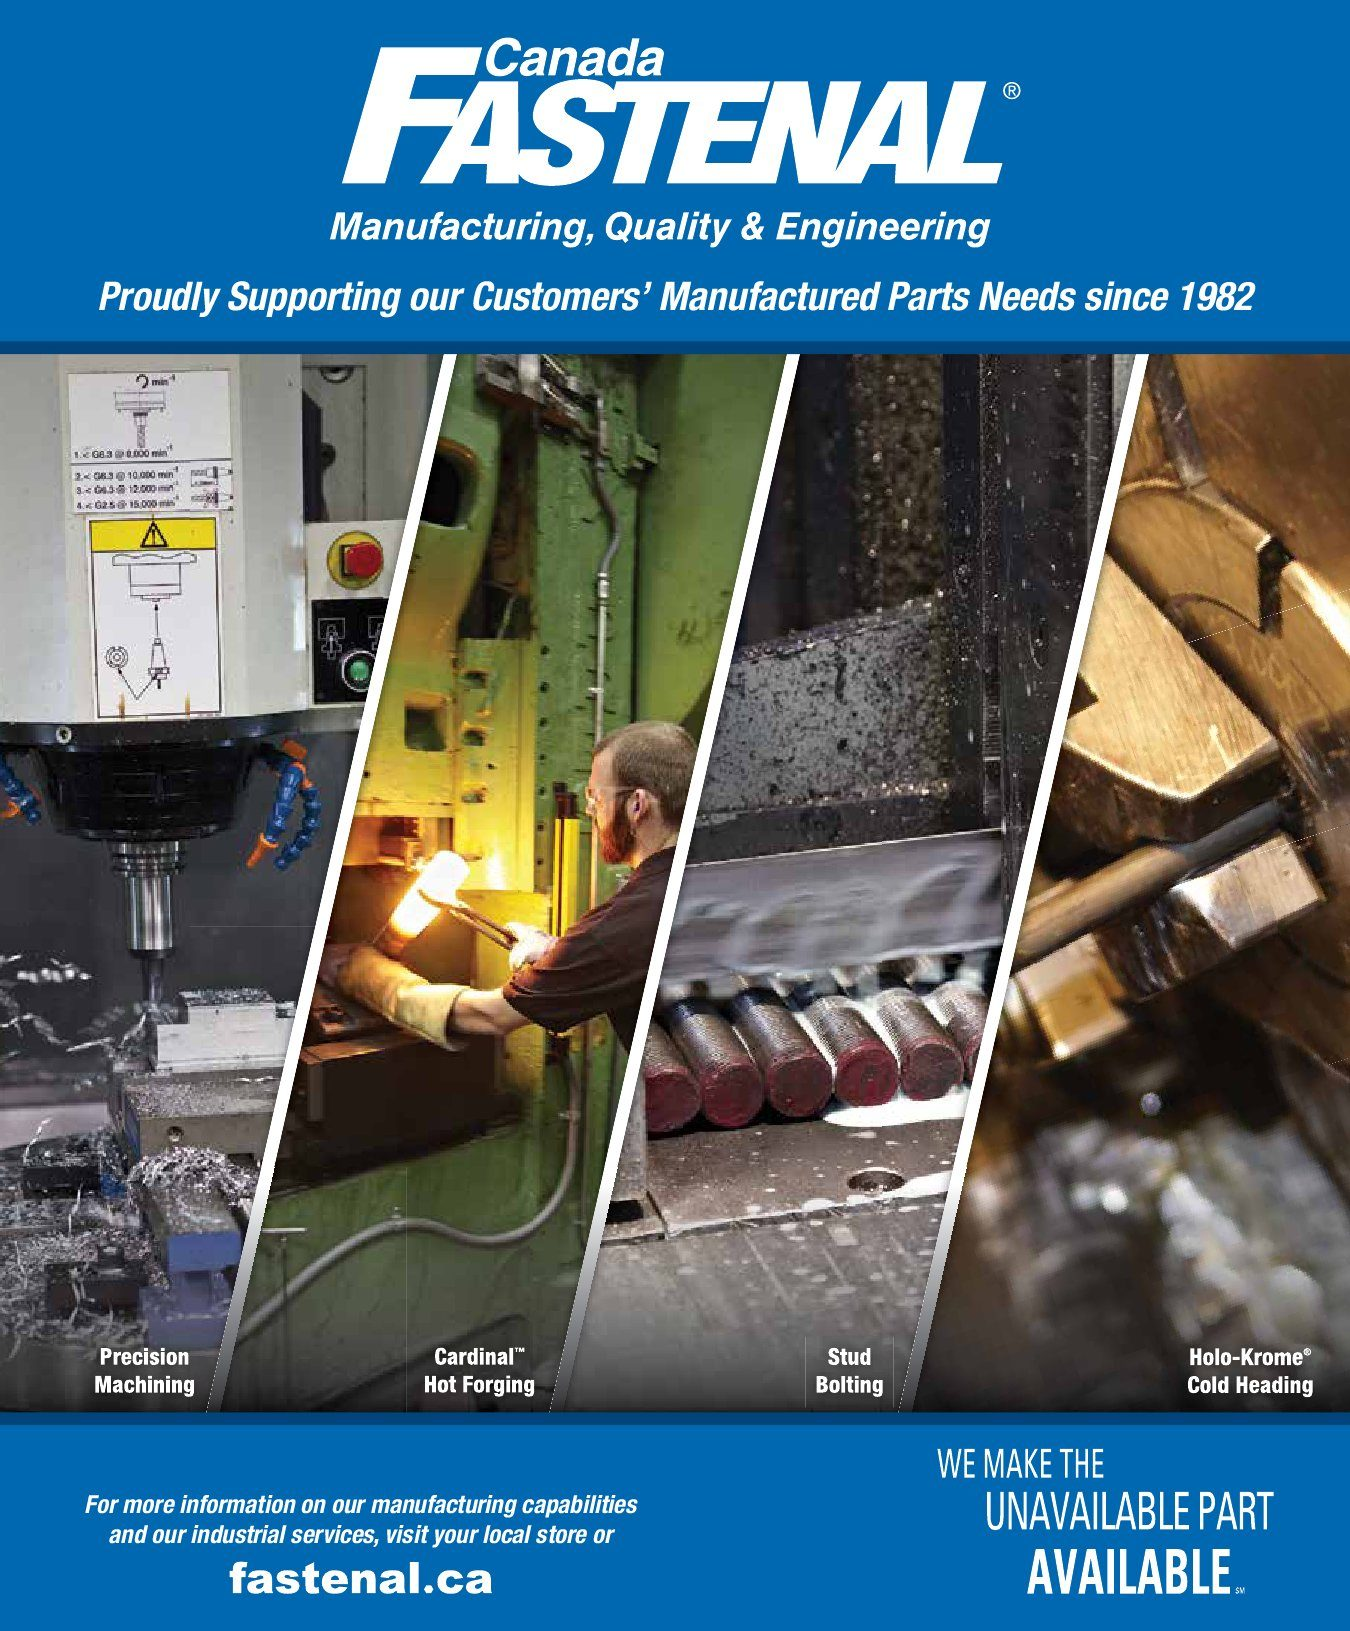 Fastenal Weekly Flyer - June Product Specials! - Jun 1 – 30